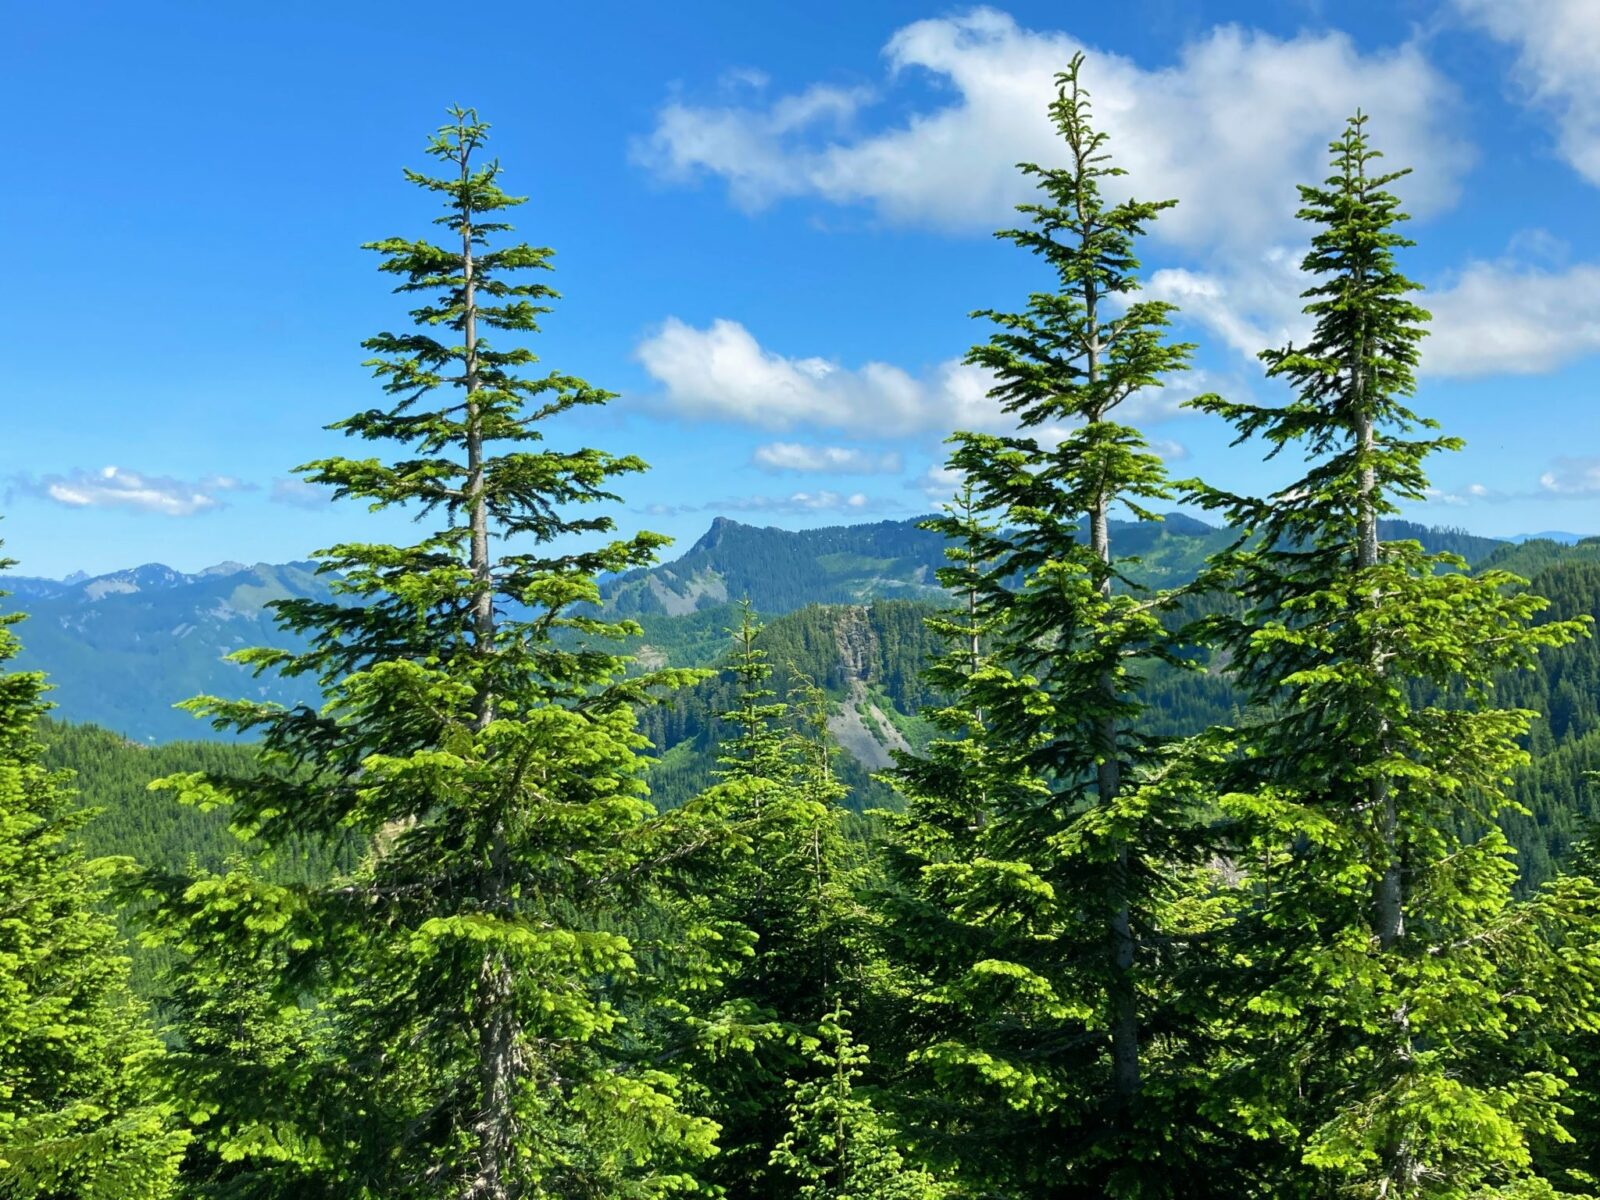 A distant mountain in the background and evergreen trees in the foreground from the summit of Mt Washington near Seattle